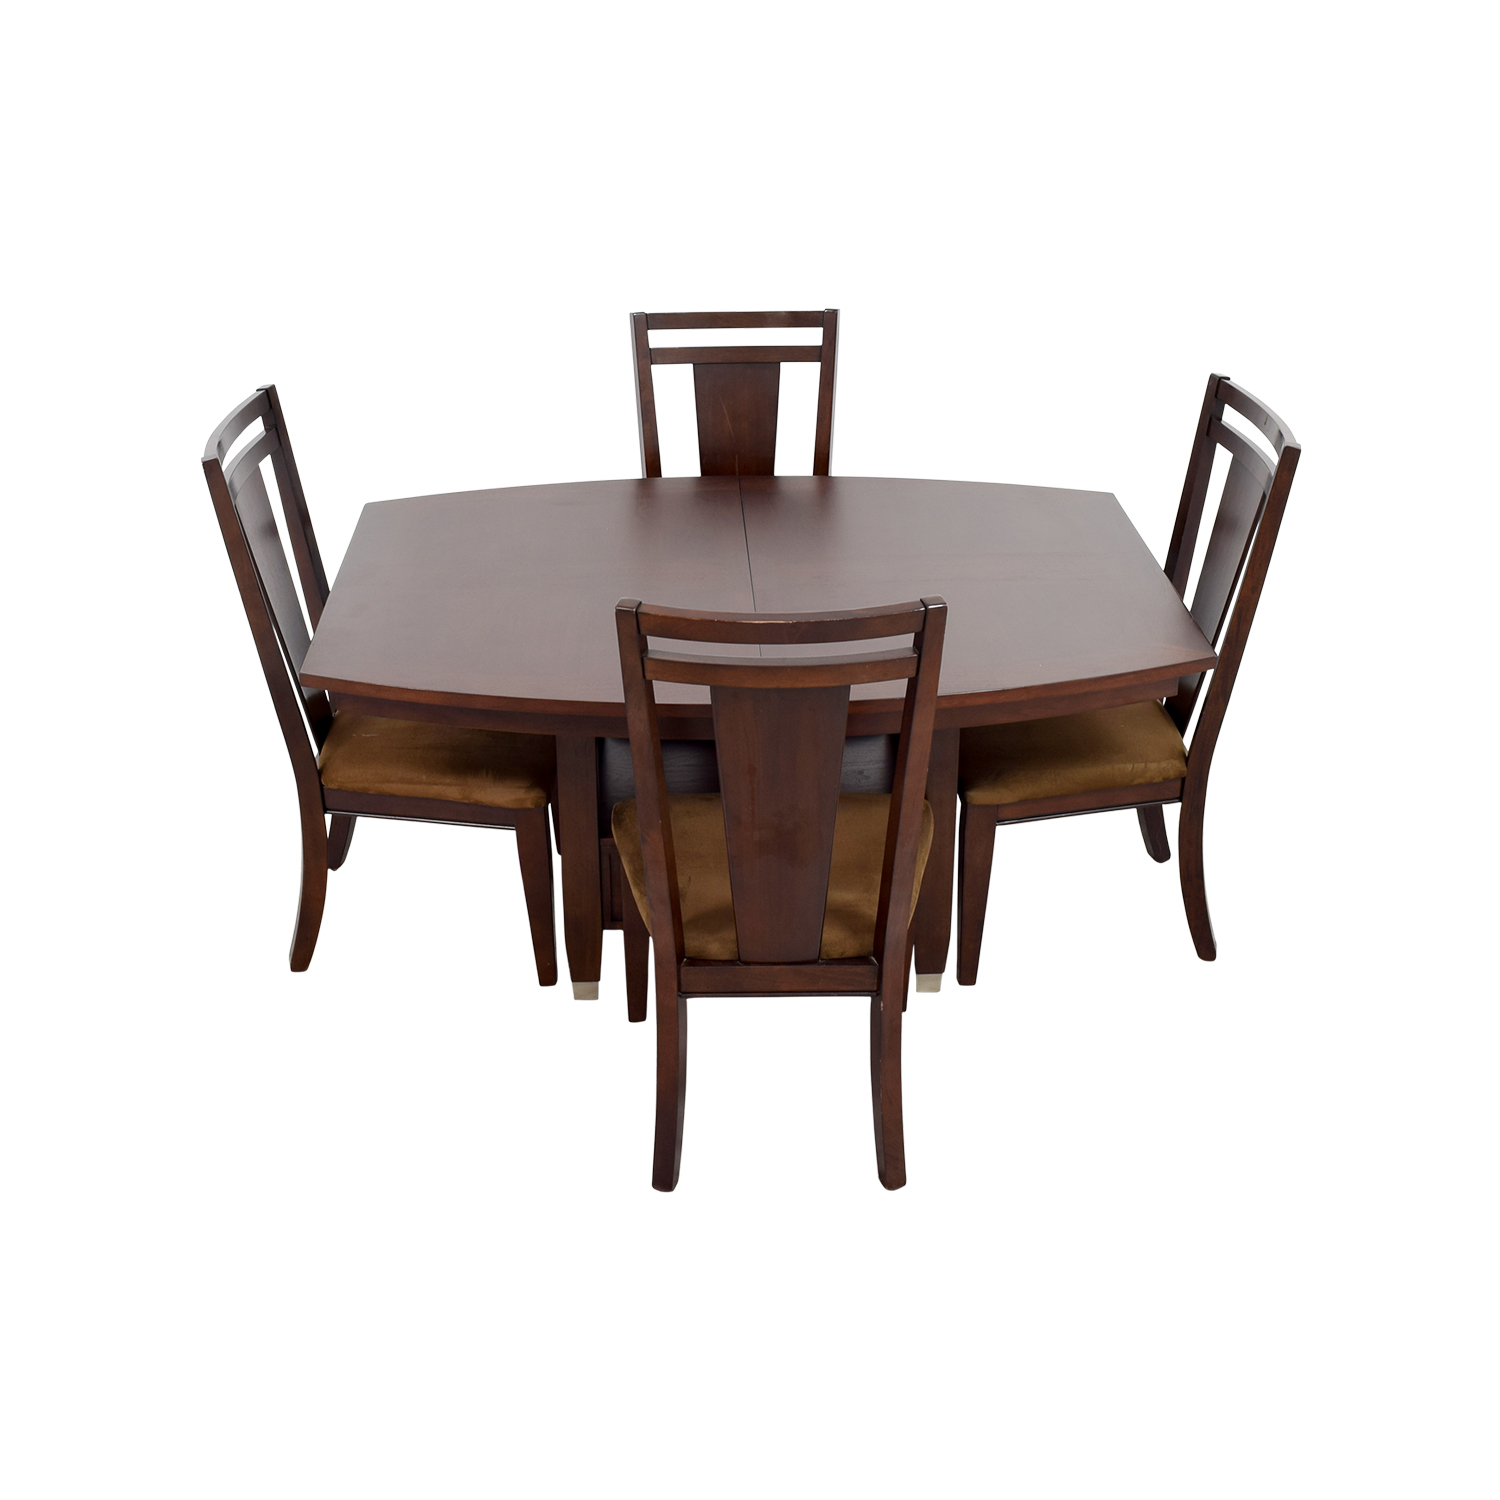 74 Off Broyhill Broyhill Wood Dining Table Set Tables